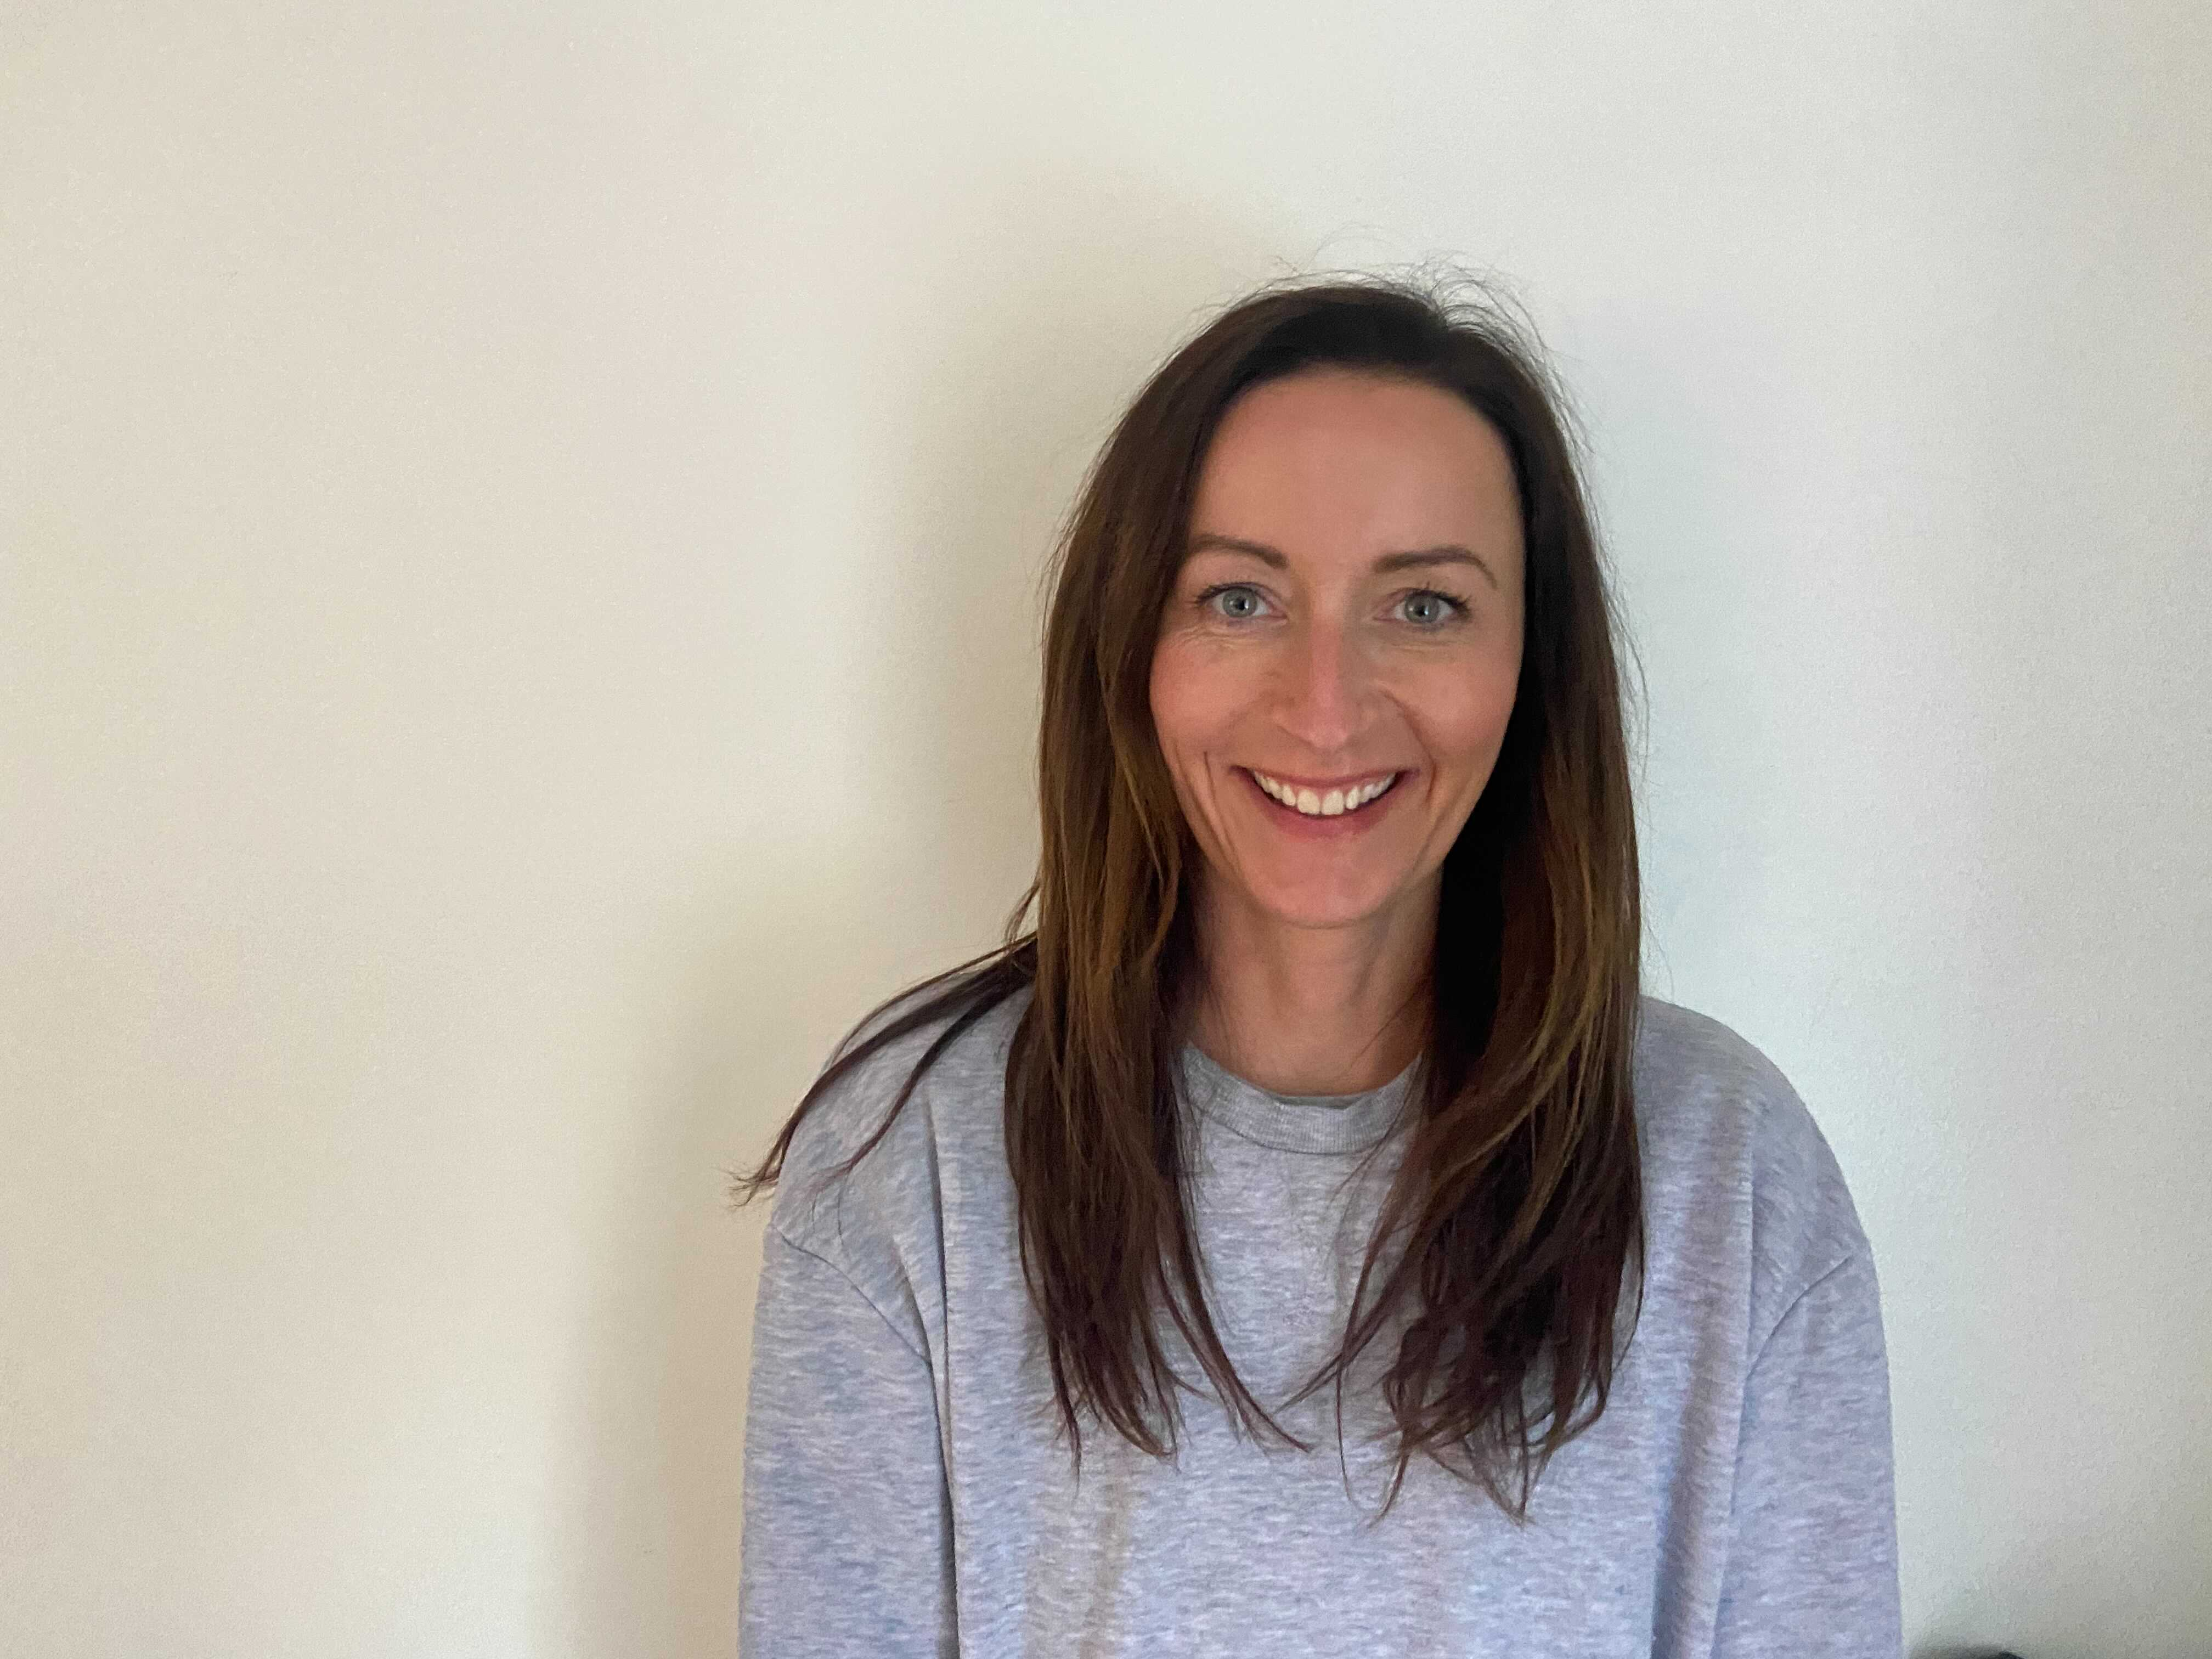 Mojo Appoints New Director of Mortgages and Reveals Growth Plans for Next 12 Months